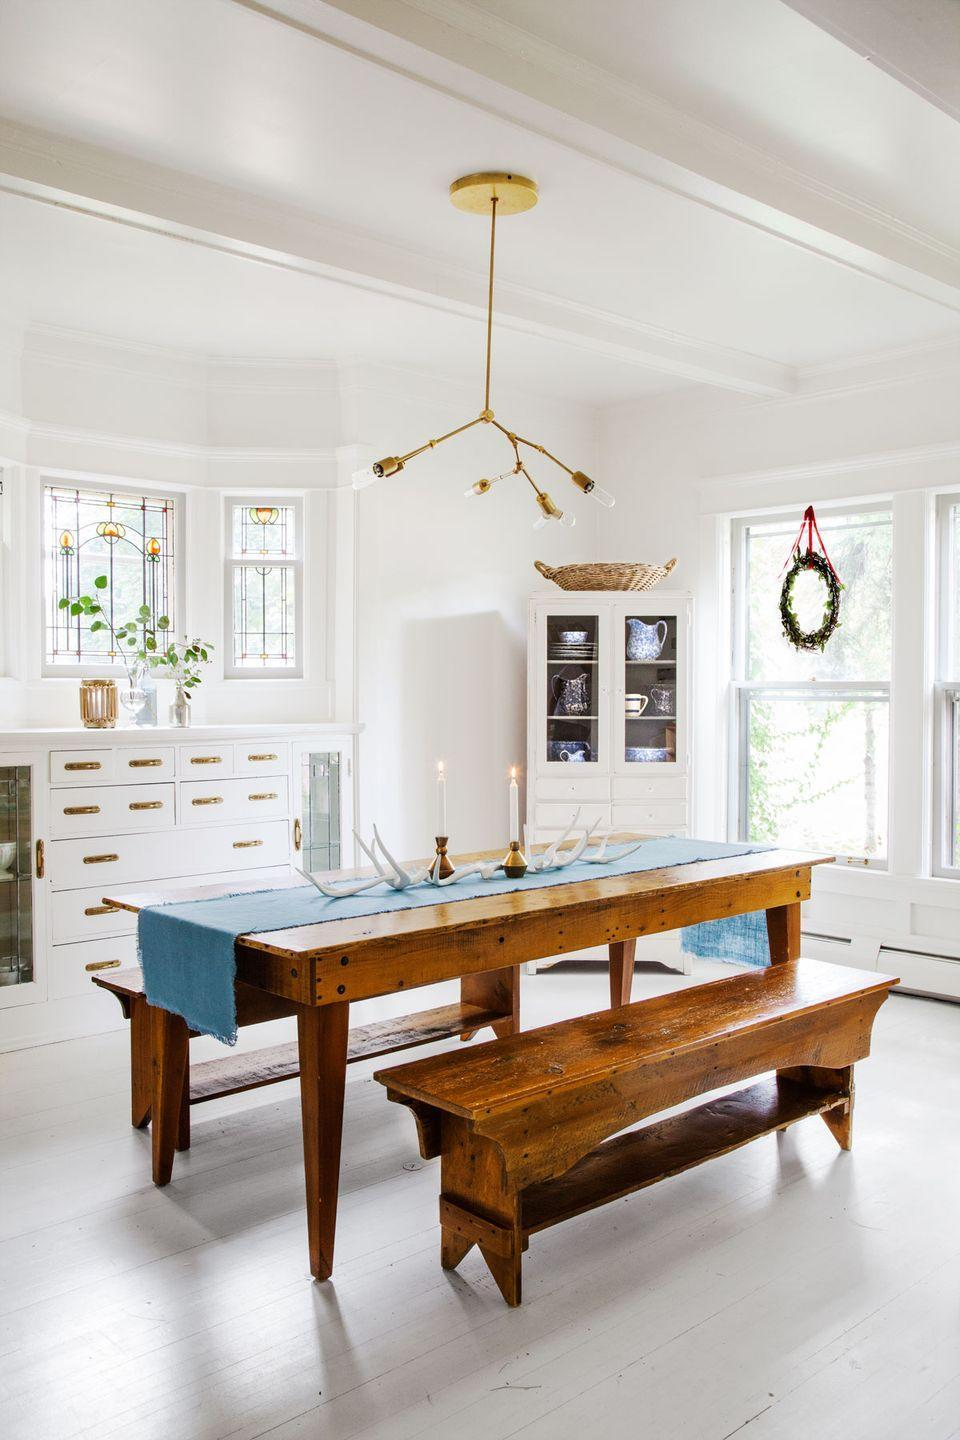 "<p>This designer keeps the dining room table in her <a href=""https://www.countryliving.com/home-design/house-tours/g2780/jennaea-gearhart-white-christmas-decor/"" rel=""nofollow noopener"" target=""_blank"" data-ylk=""slk:historic Tudor house"" class=""link rapid-noclick-resp"">historic Tudor house</a> simple for the season with a blue runner, brass candle holders, and antlers.</p><p><a class=""link rapid-noclick-resp"" href=""https://go.redirectingat.com?id=74968X1596630&url=https%3A%2F%2Fwww.etsy.com%2Fmarket%2Fbrass_candle_holder&sref=https%3A%2F%2Fwww.countryliving.com%2Fdiy-crafts%2Fg644%2Fchristmas-tables-1208%2F"" rel=""nofollow noopener"" target=""_blank"" data-ylk=""slk:SHOP BRASS CANDLE HOLDERS"">SHOP BRASS CANDLE HOLDERS</a></p>"